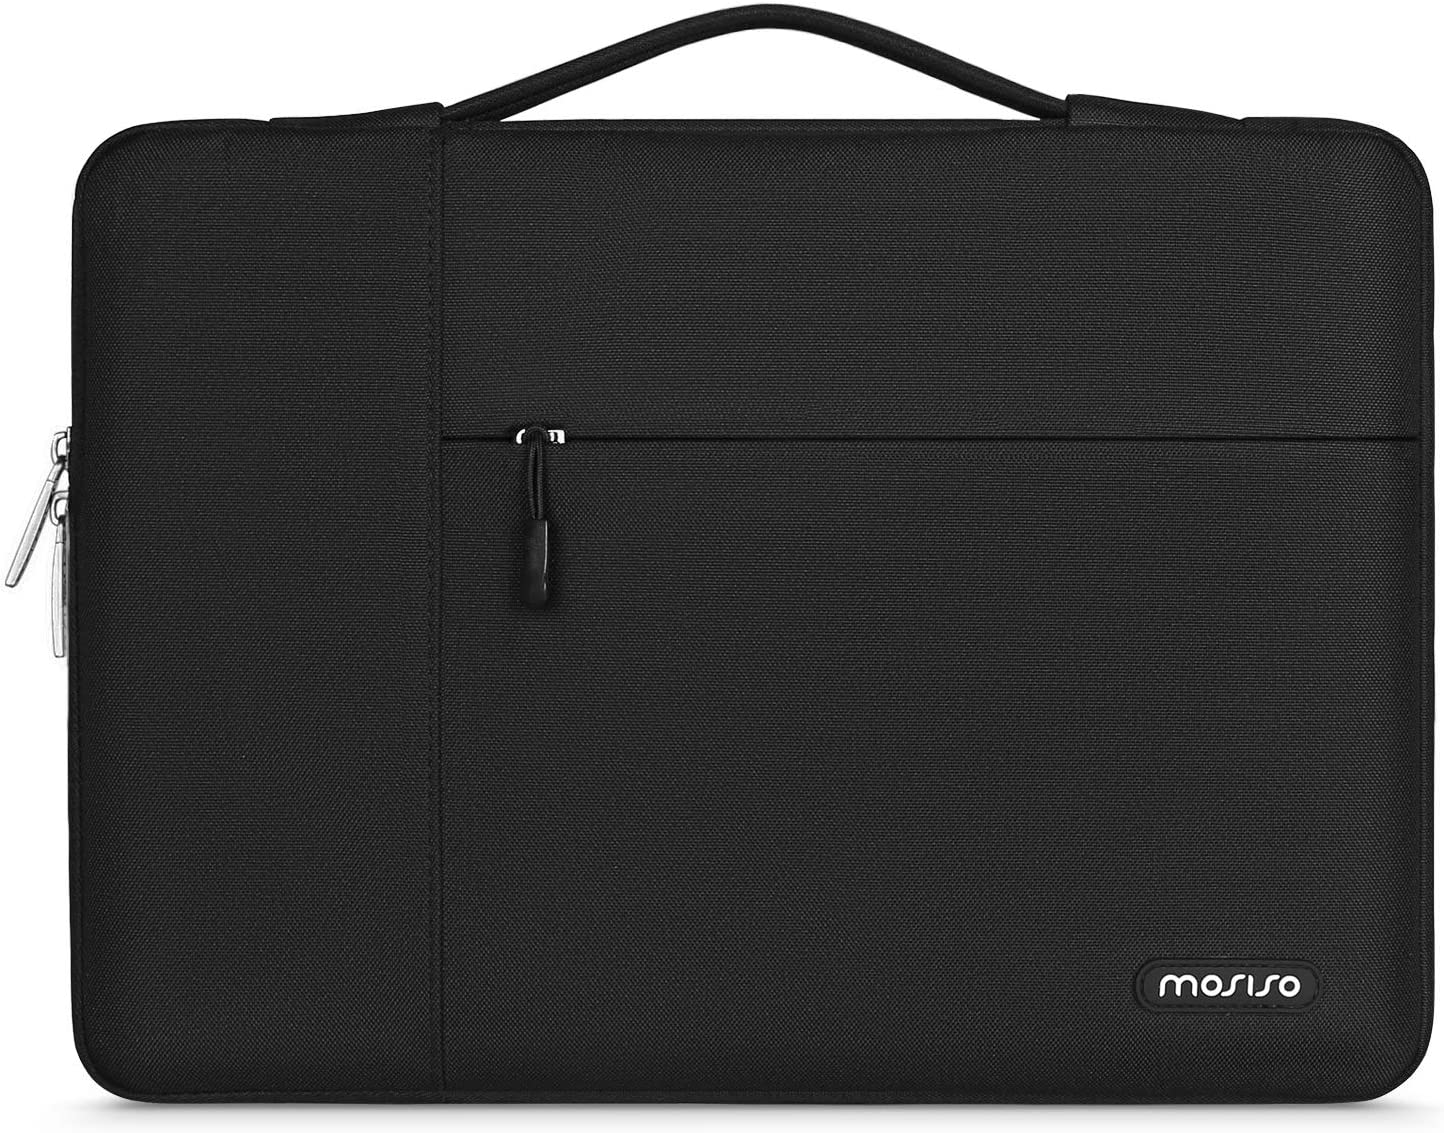 MOSISO Laptop Sleeve Case with Corner Protection Compatible with 13-13.3 inch MacBook Pro, MacBook Air, Surface Laptop 3/2/1 13.5, Lenovo Dell Toshiba HP ASUS Acer, Polyester Briefcase Bag, Black